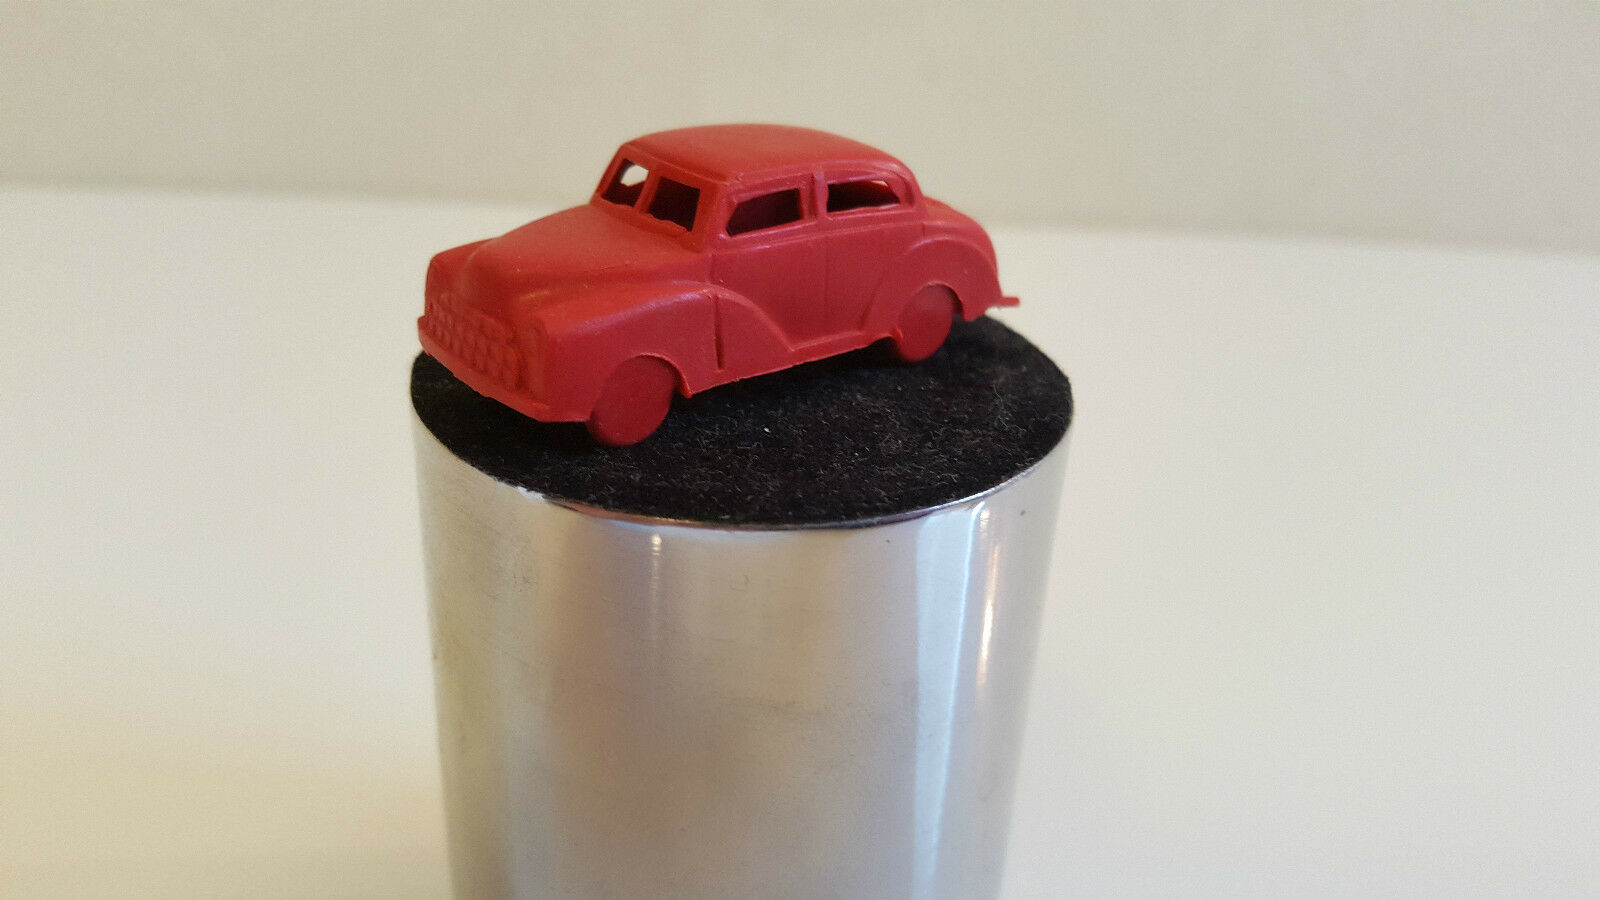 MPC (USA) - Voiture miniature Morris rouge rouge rouge (HO - 1/87) Vintage dadb96